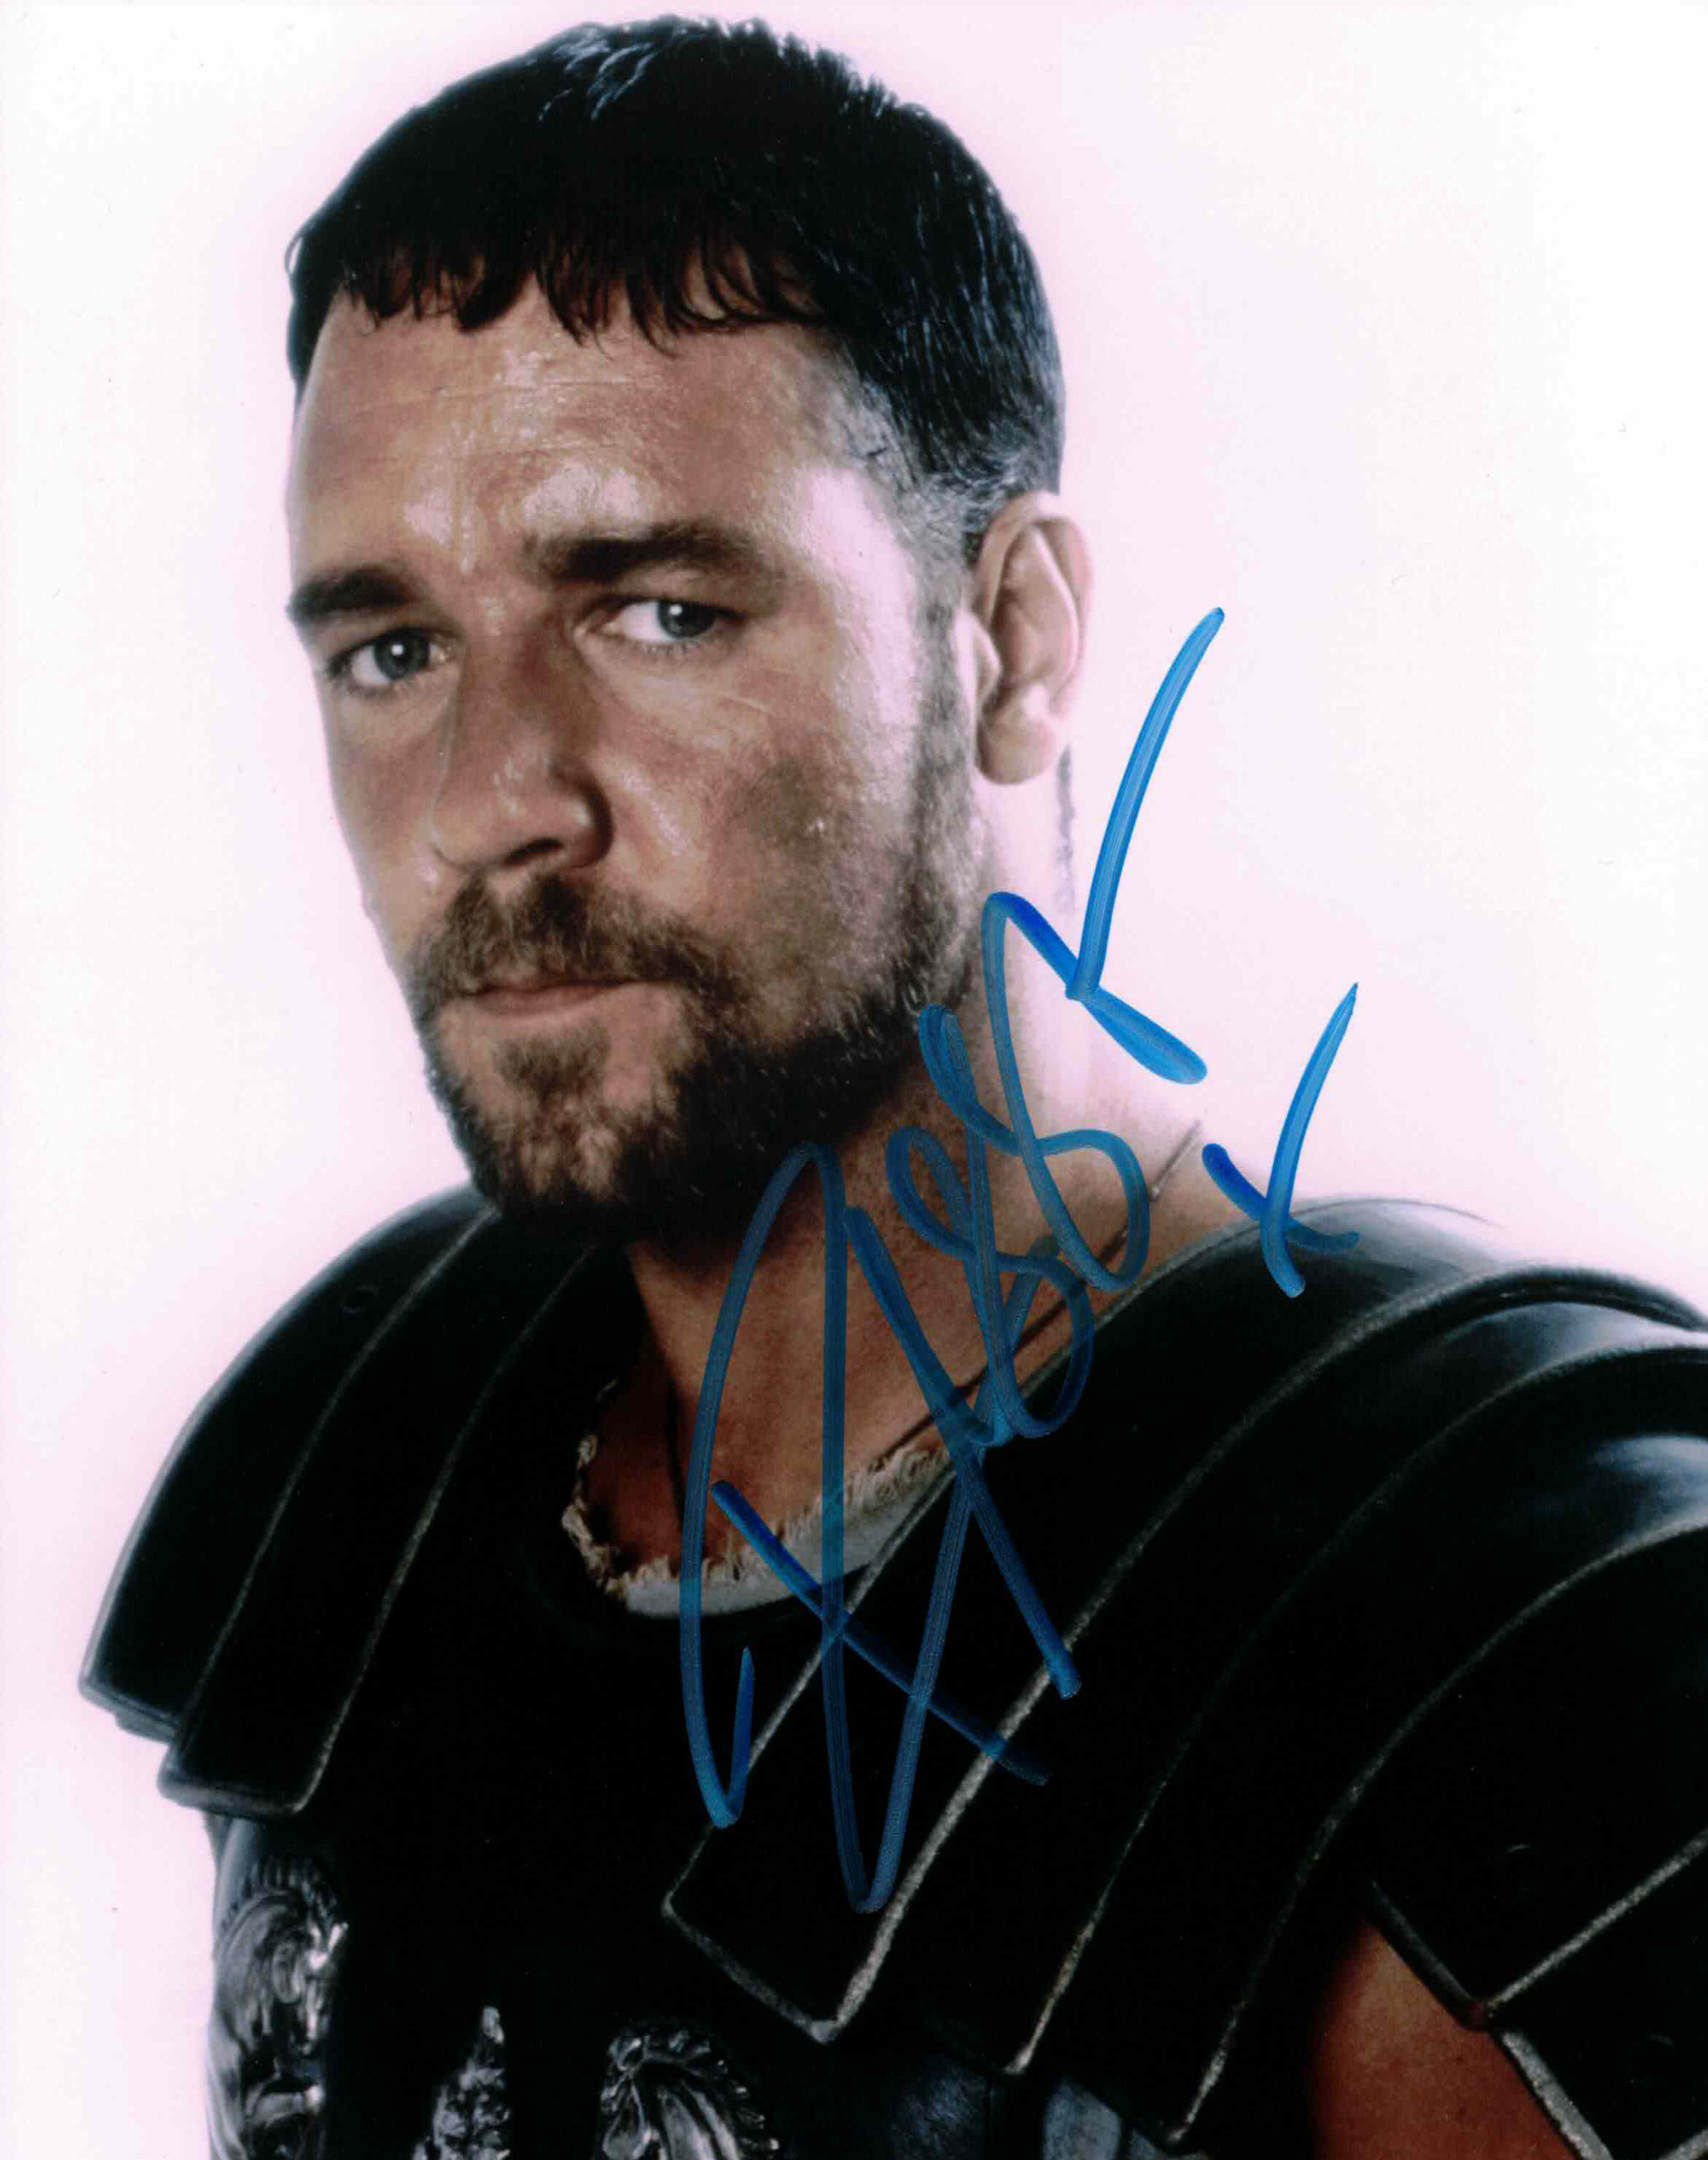 Russell Crowe / Gladiator - autogram